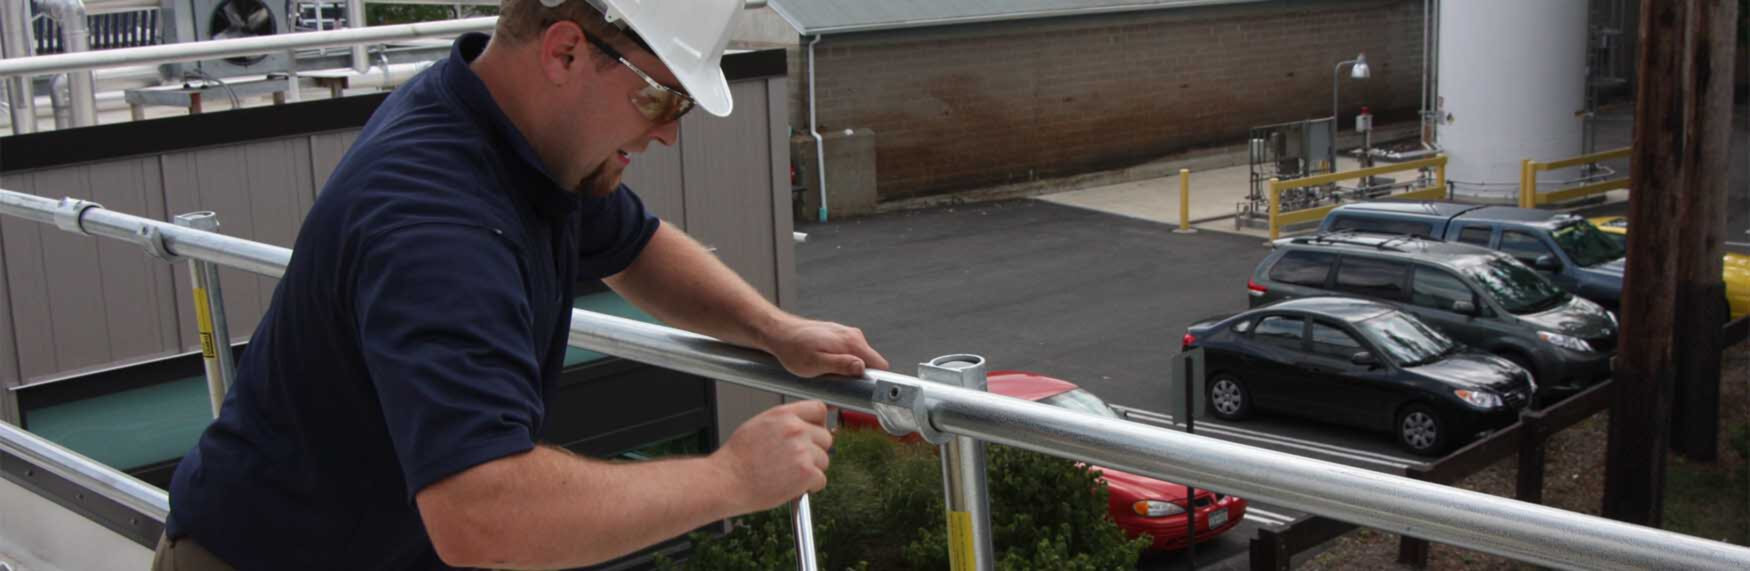 fall protection installation and site survey services